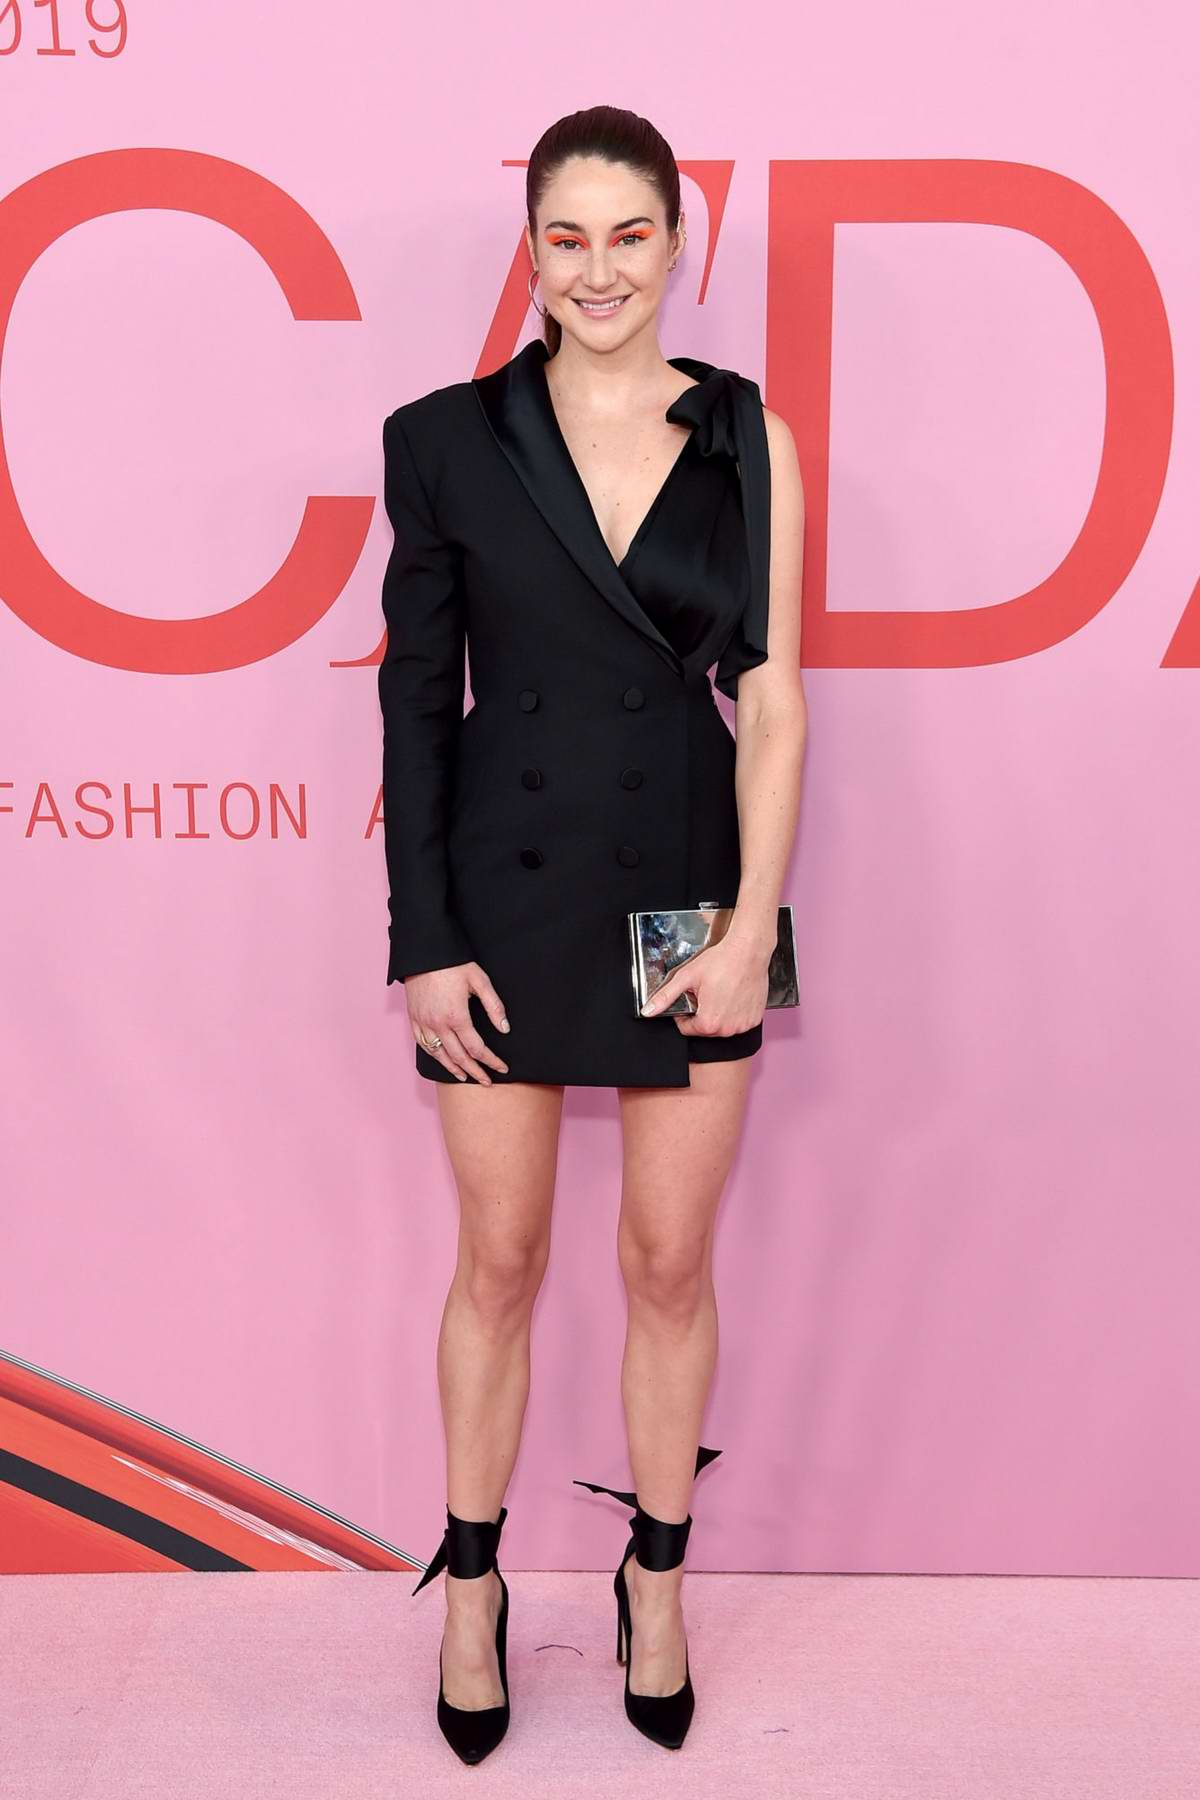 Shailene Woodley attends the 2019 CFDA Fashion Awards at Brooklyn Museum in New York City